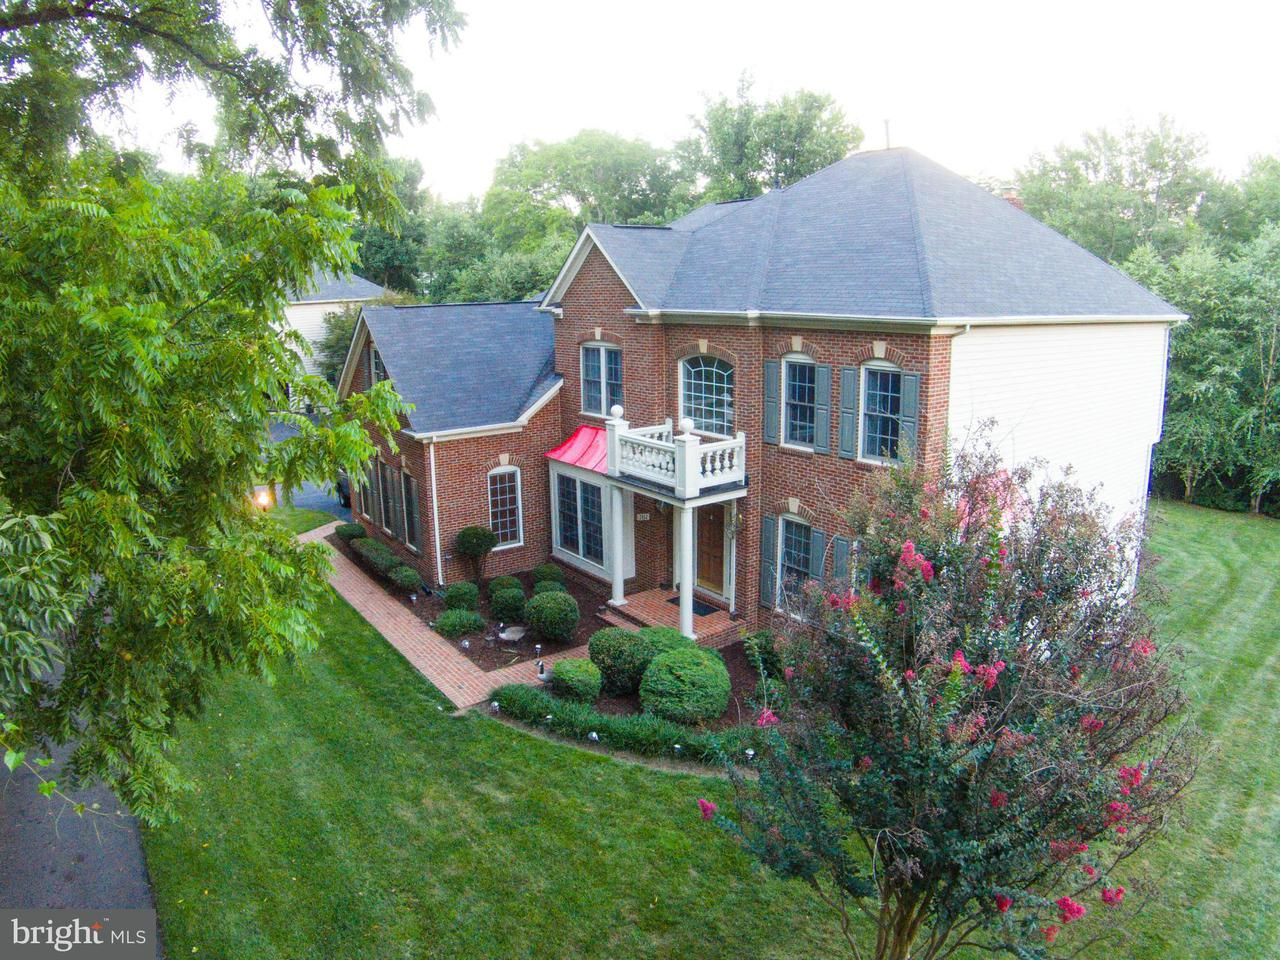 Single Family Home for Sale at 12812 Westbrook Drive 12812 Westbrook Drive Fairfax, Virginia 22030 United States